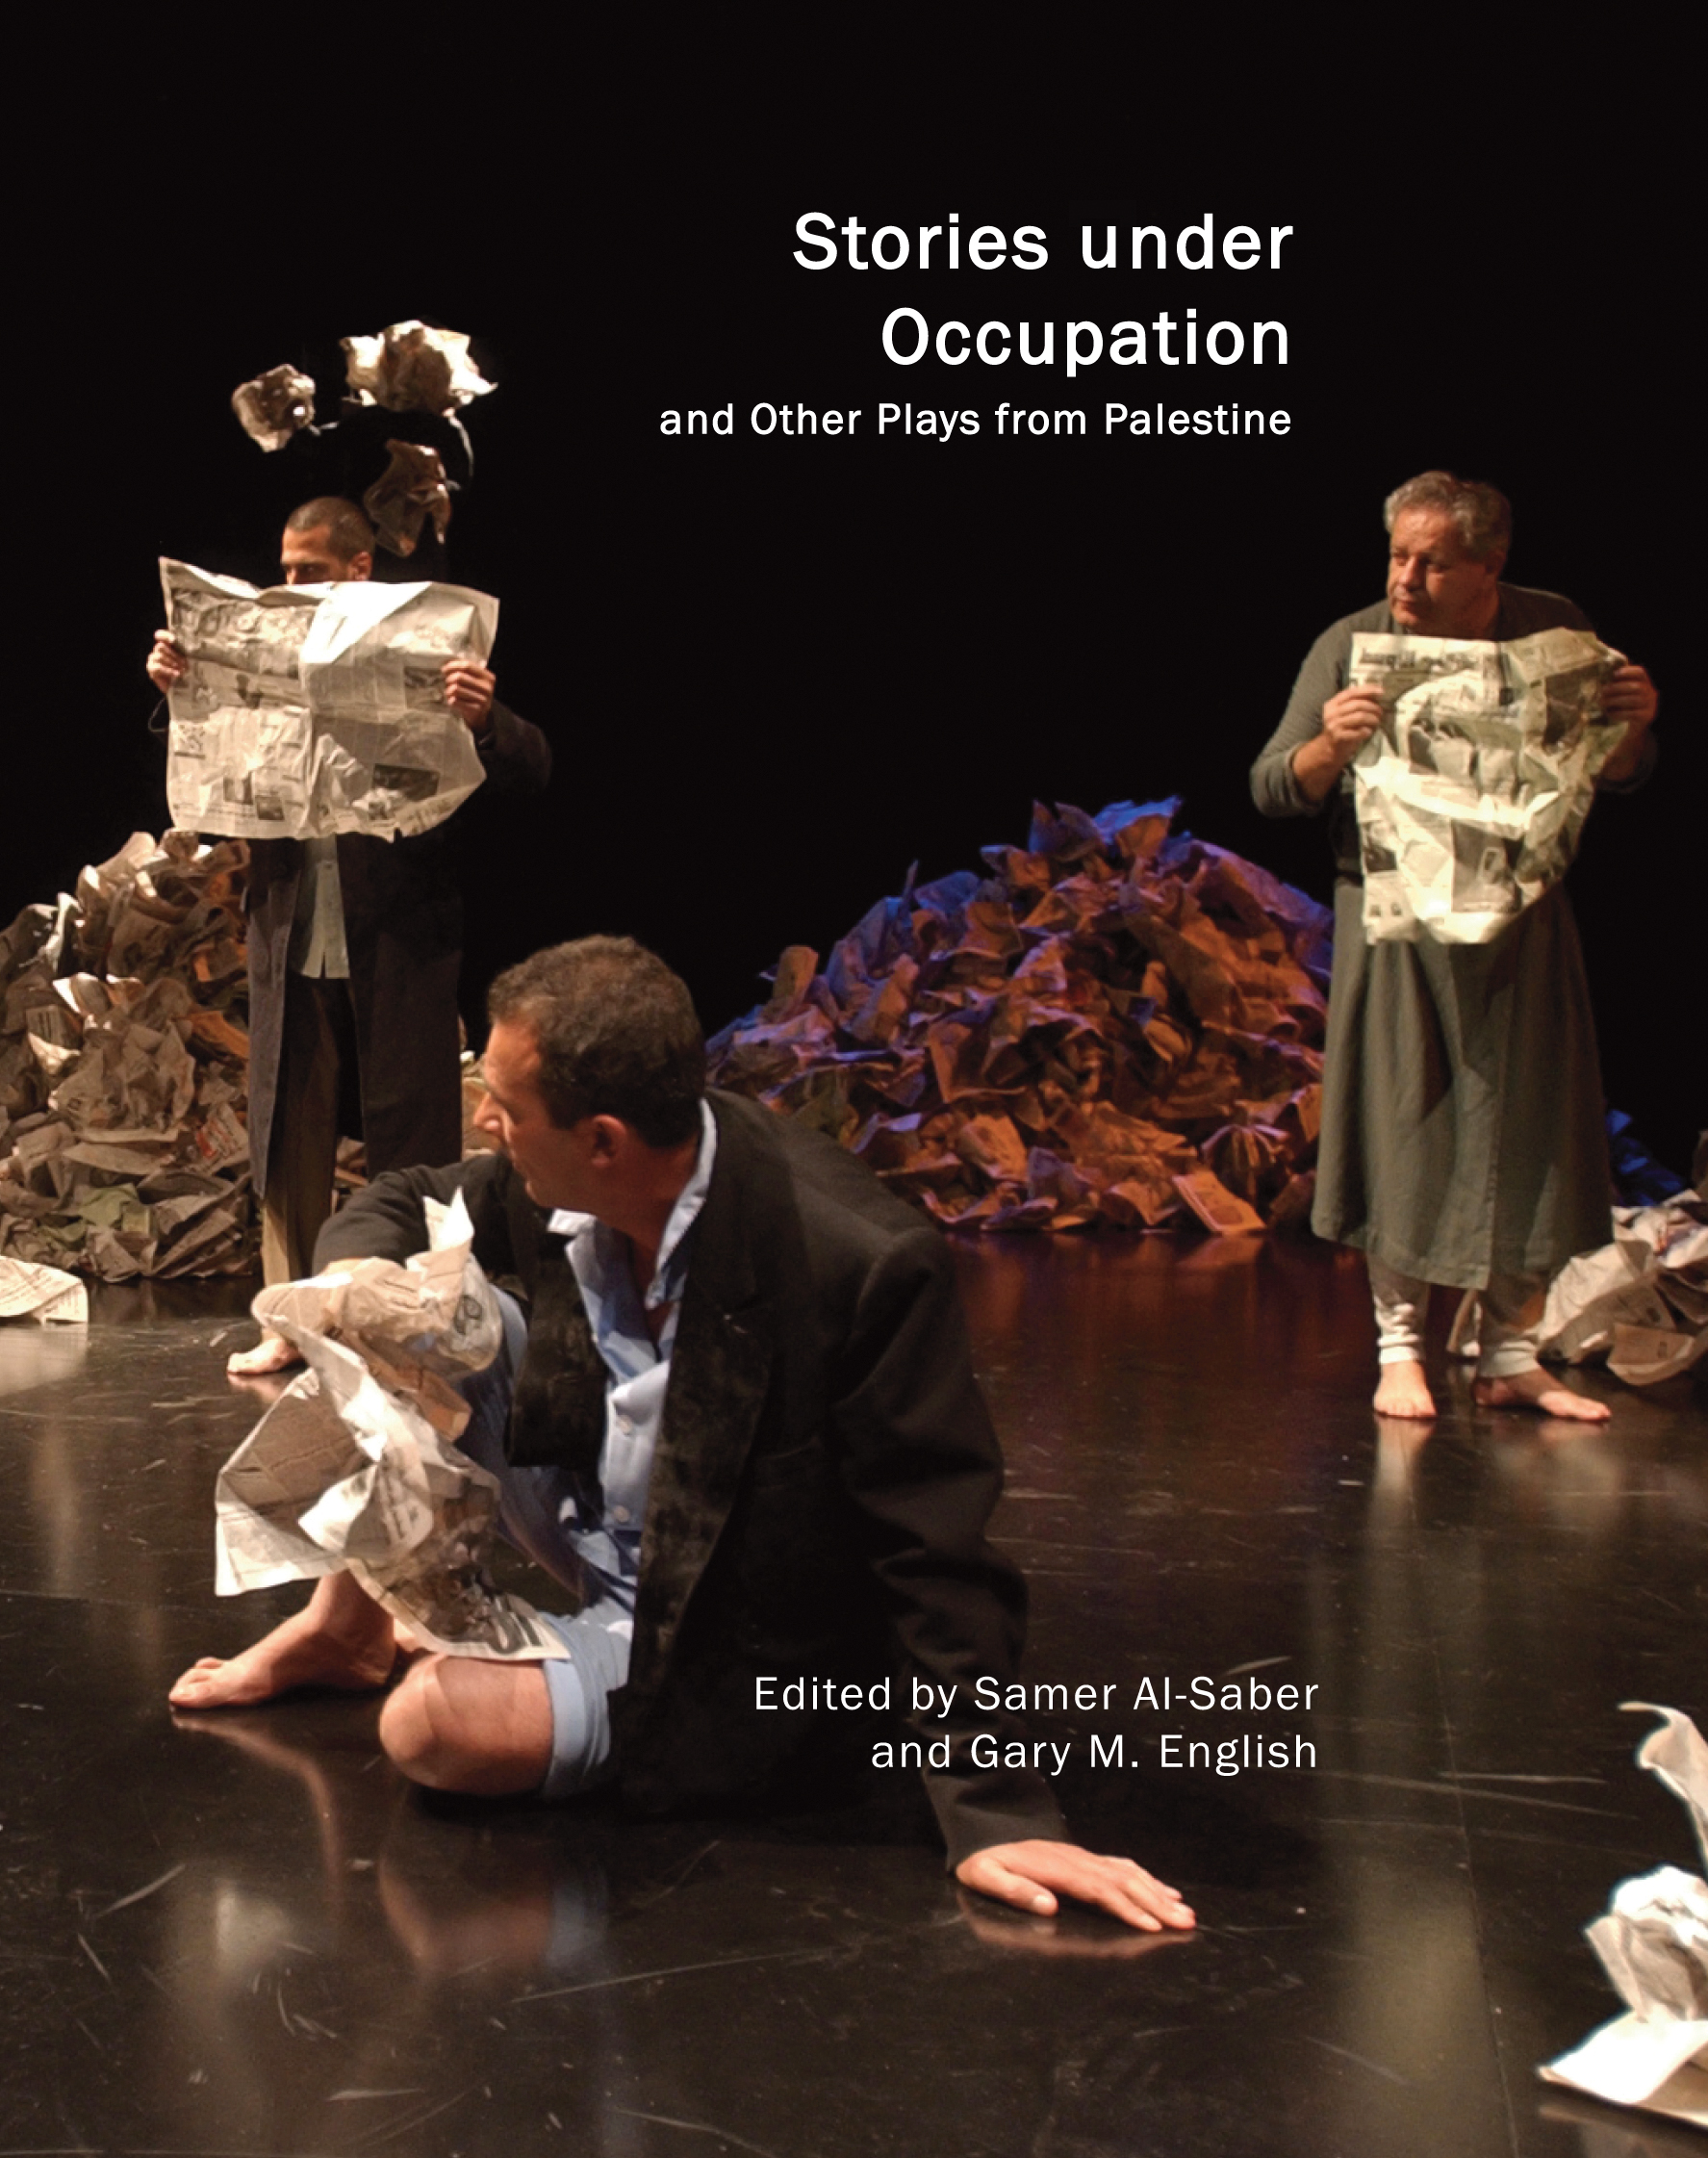 Stories under Occupation and Other Plays from Palestine edited by Samer Al-Saber and Gary M. English | Seagull Books